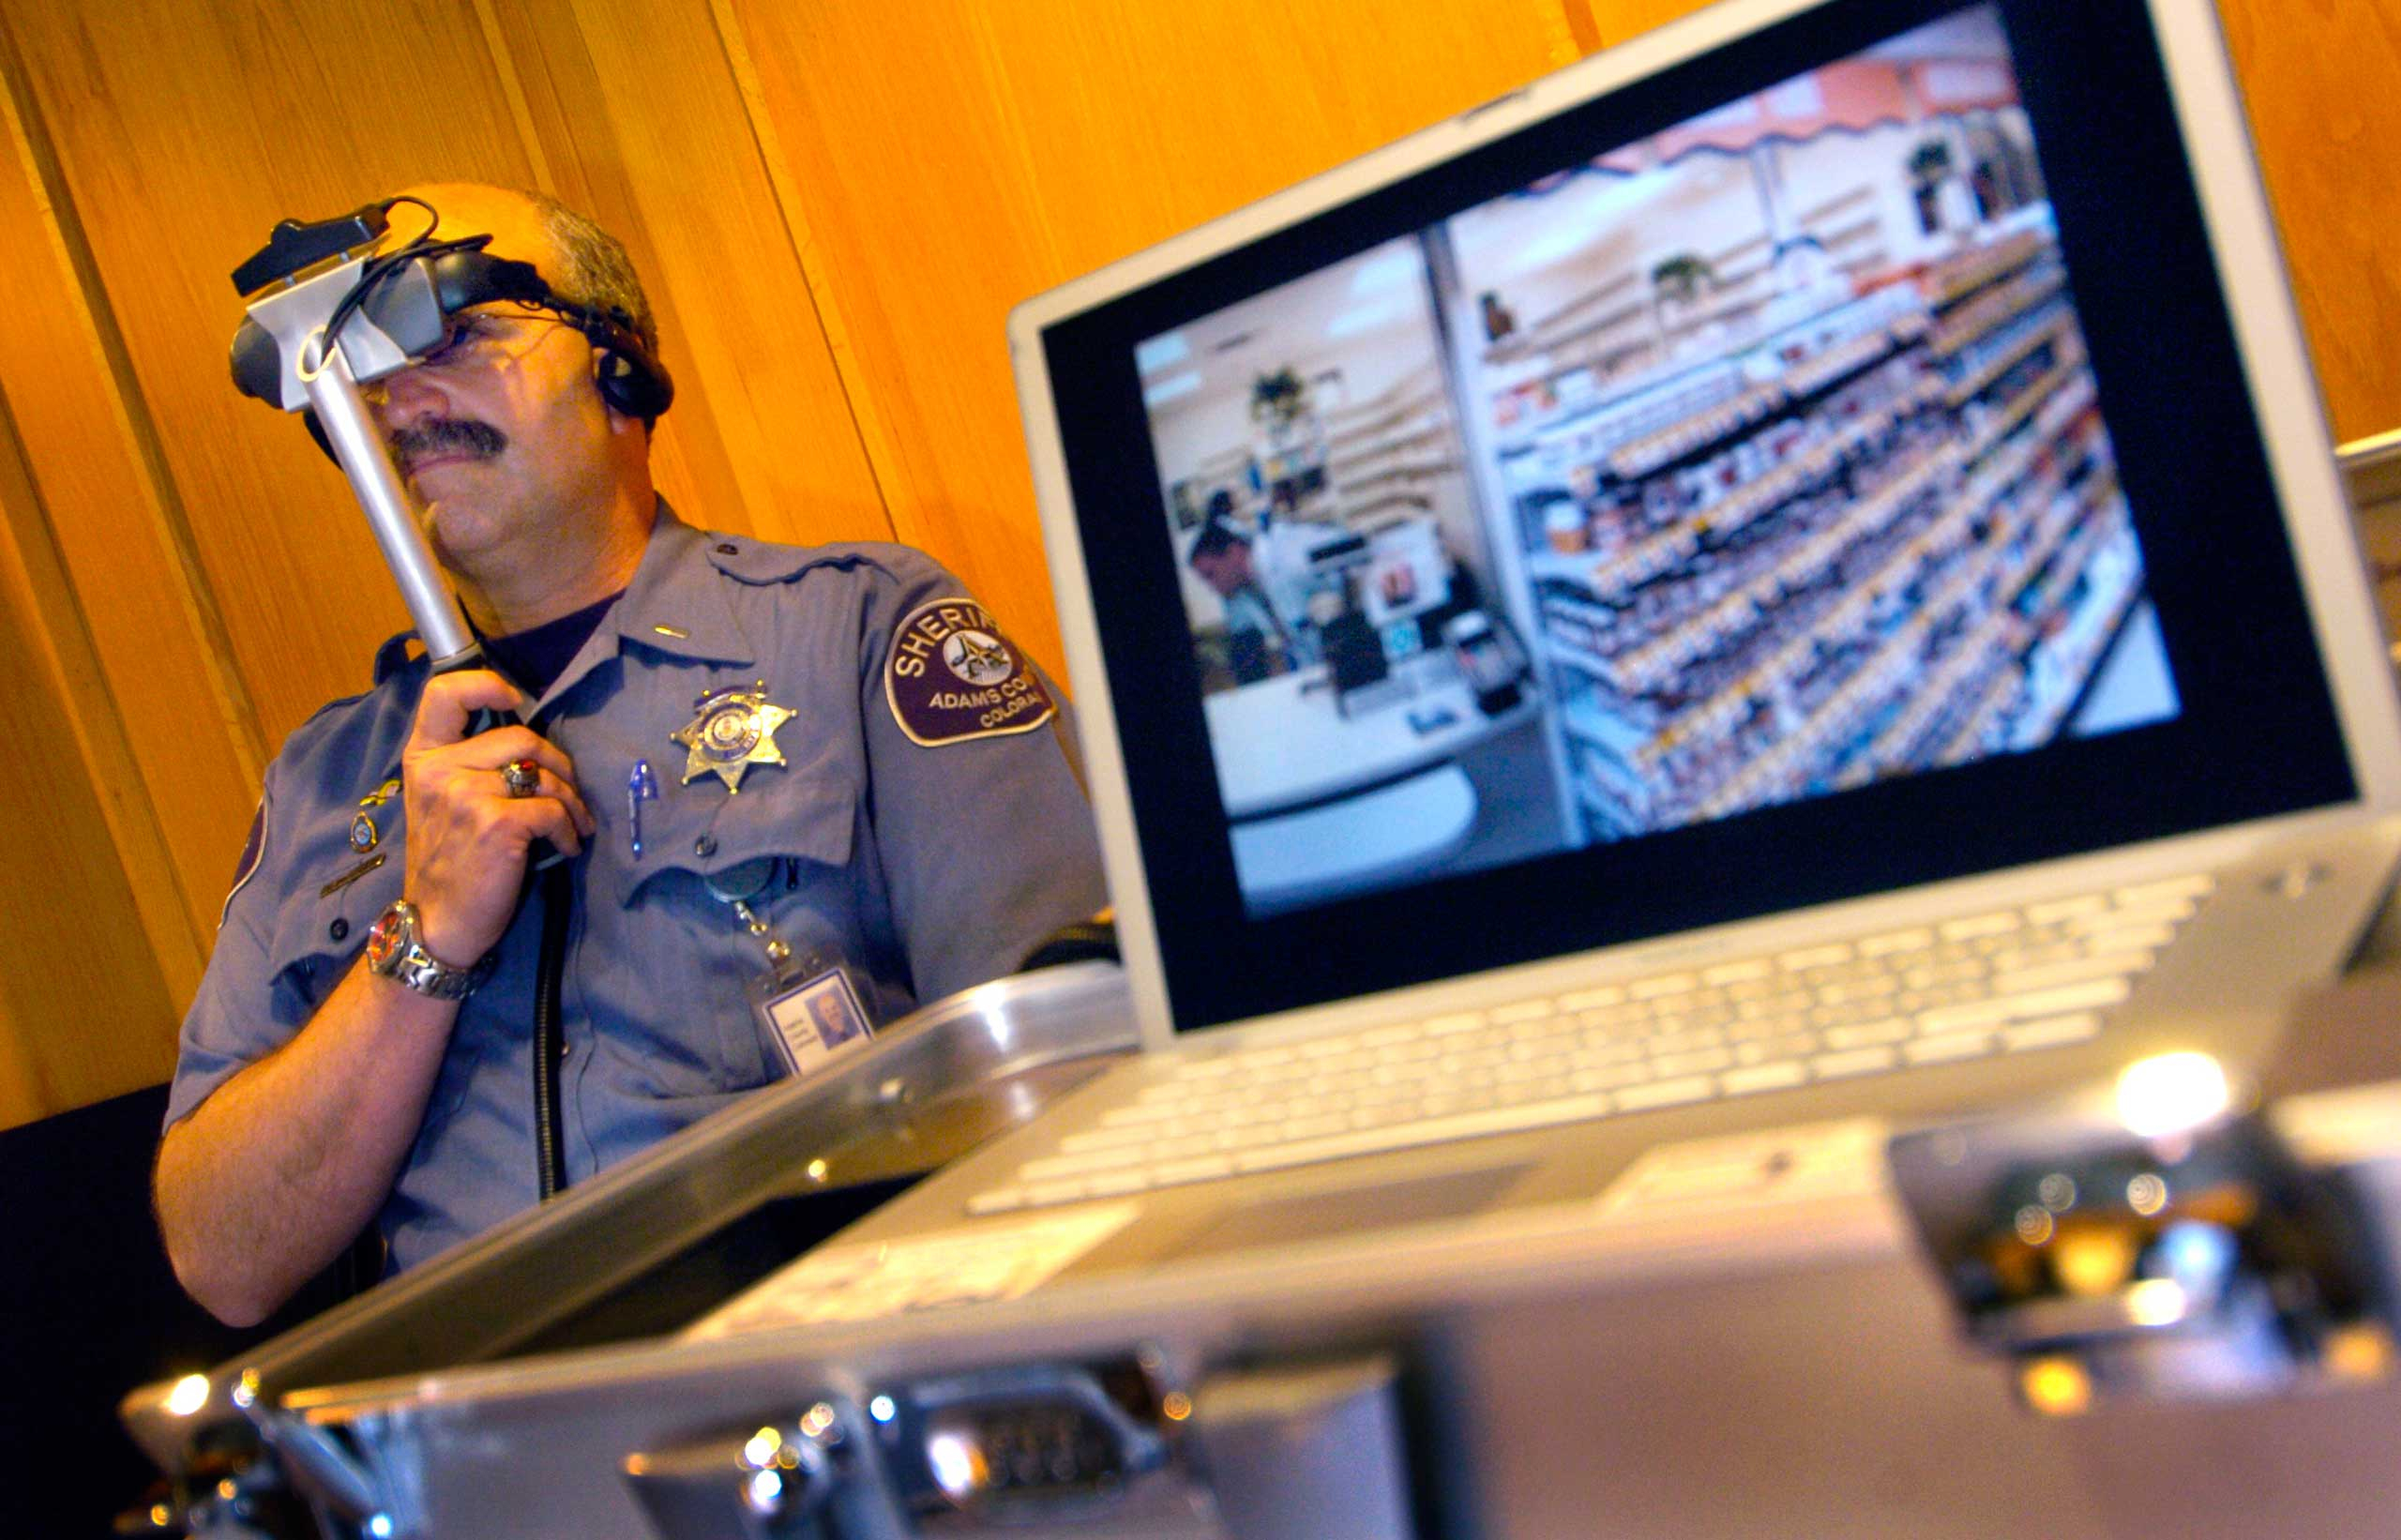 2006                                                              Lt. David Shipley of the Adams County Sheriff's Department watched an interactive video that replicated the experiences of a schizophrenic patient having auditory and visual hallucinations while attempting to refill a prescription at a pharmacy.